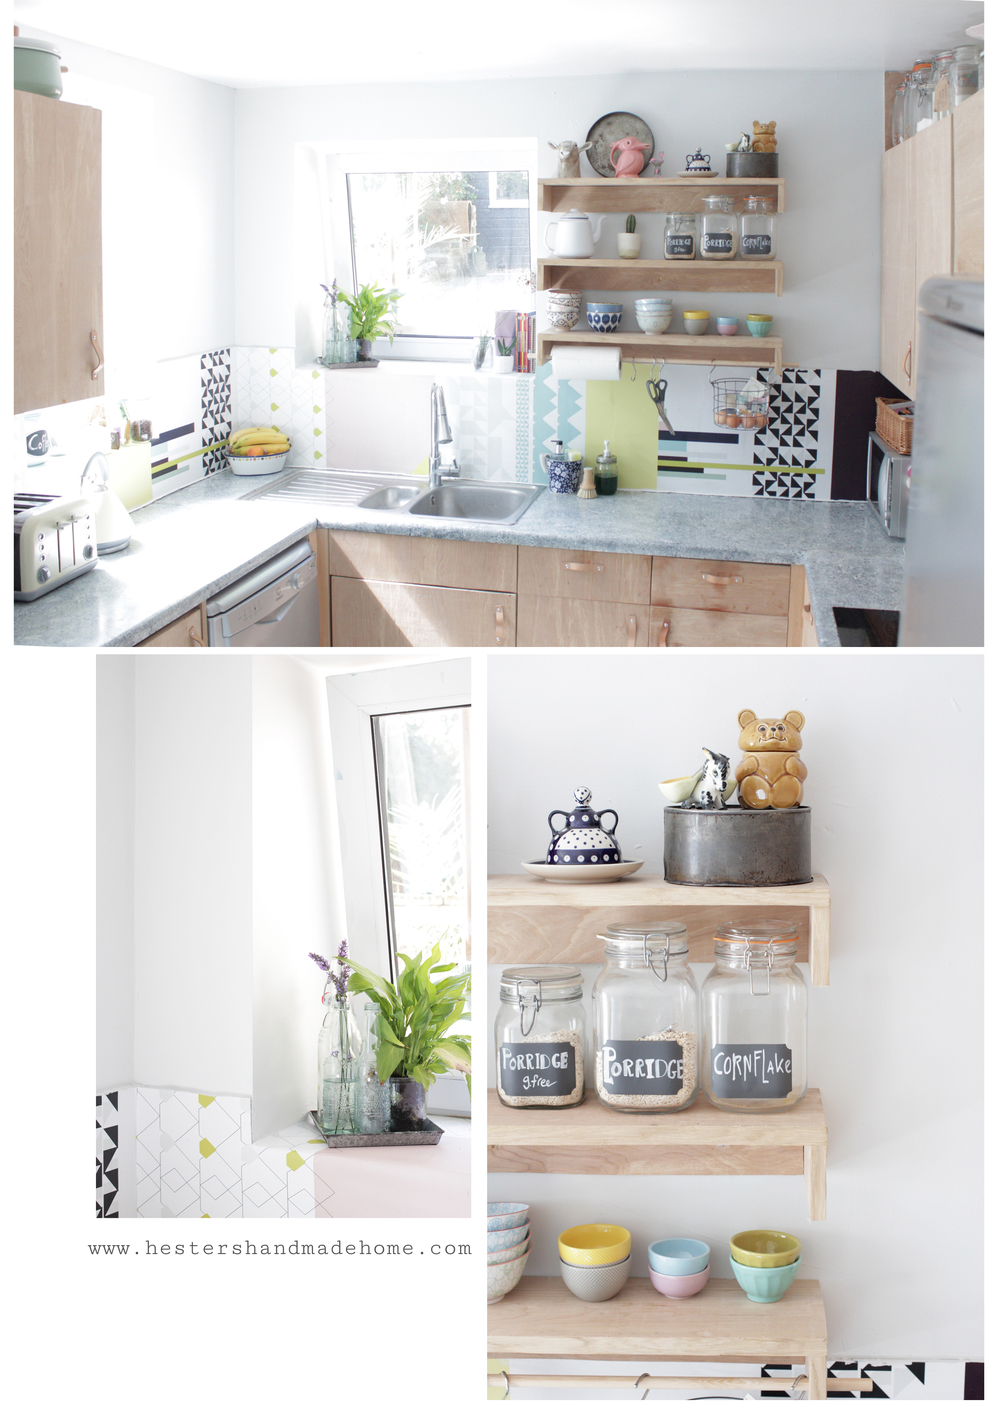 Scandi style kitchen makeover by www.hestershandmadehome.com